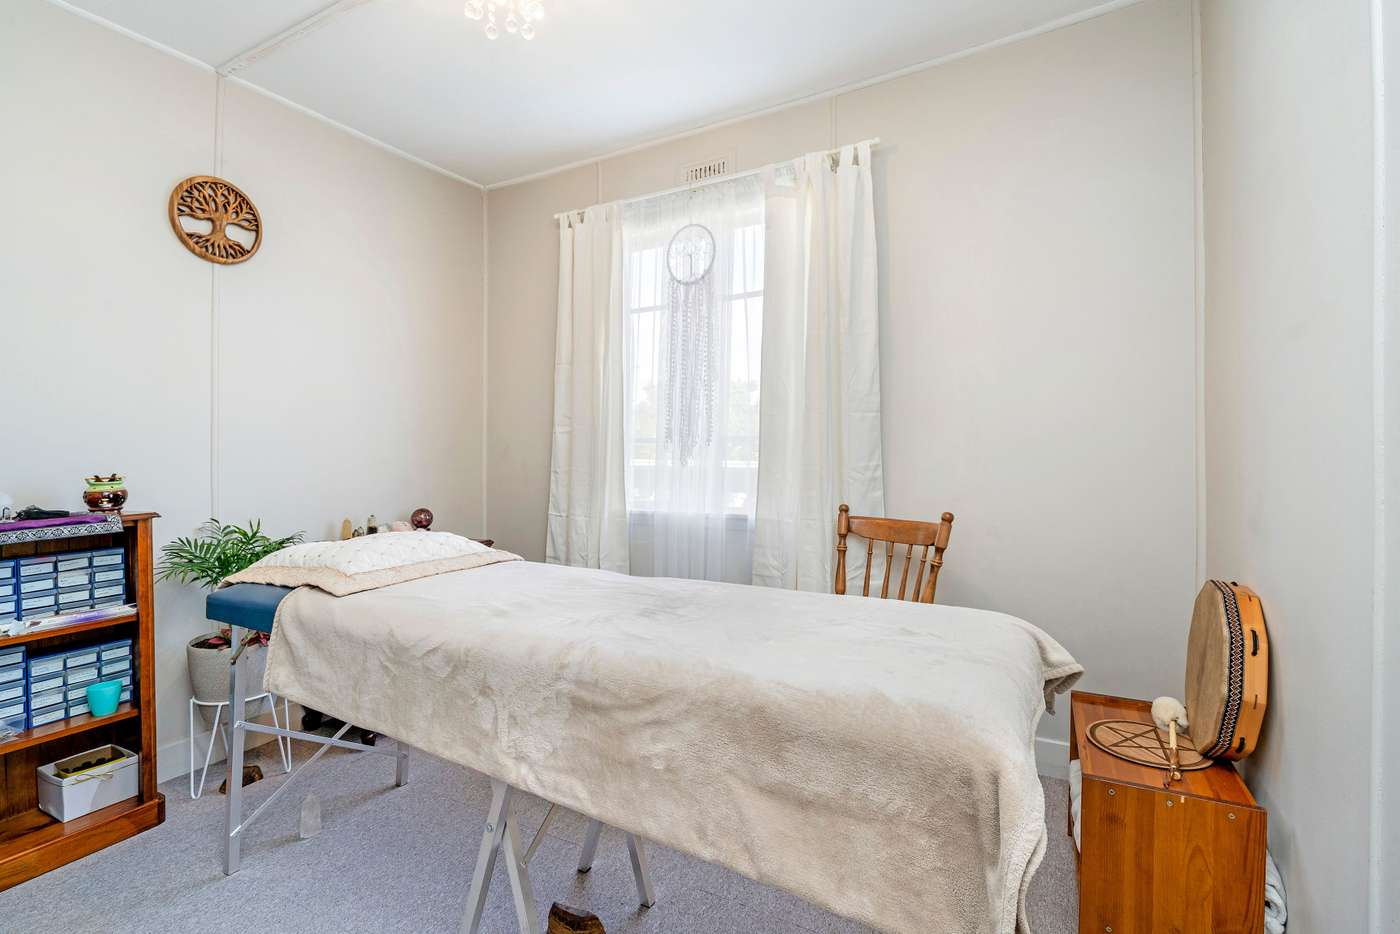 Seventh view of Homely house listing, 82 Mayfield Street, Mayfield TAS 7248